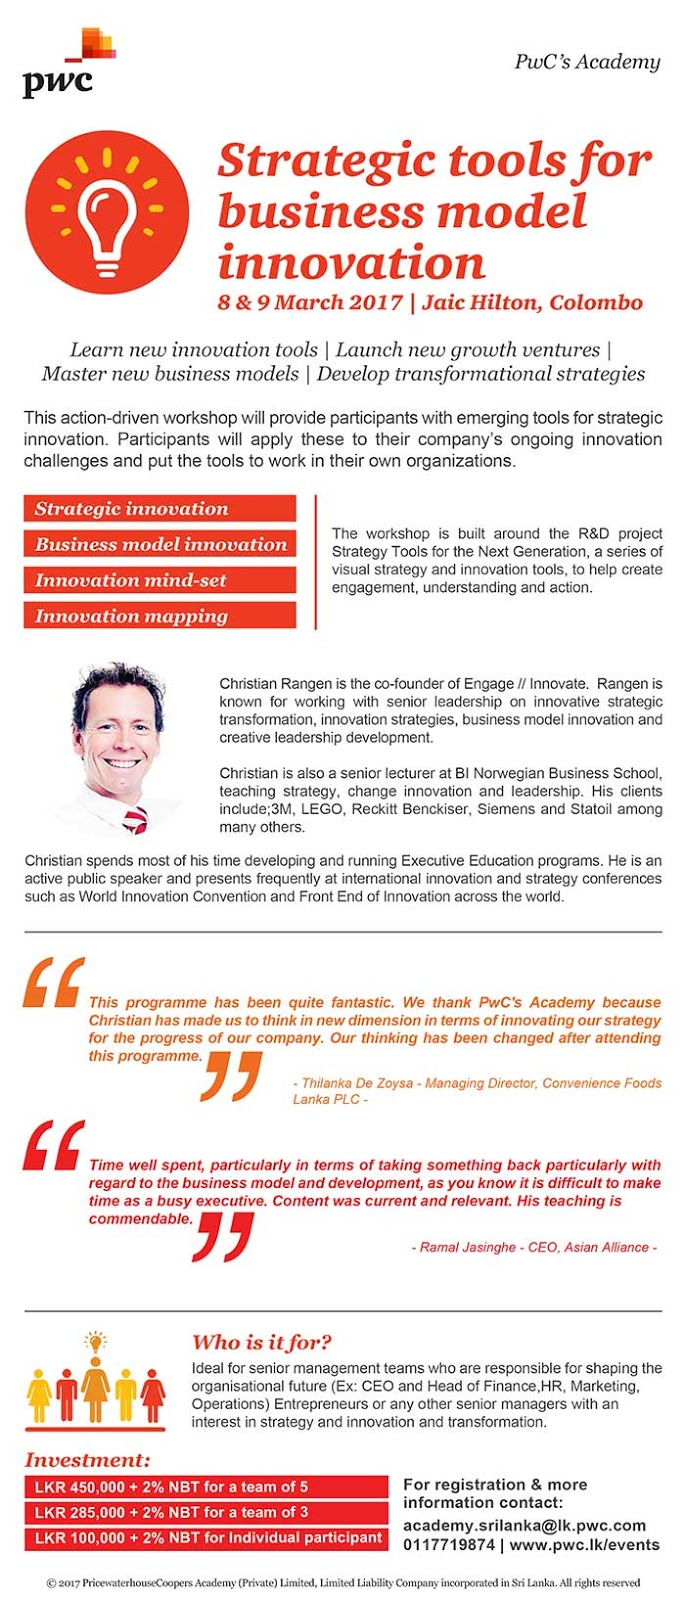 PWC Academy | Strategic Tools for Business Model Innovation.